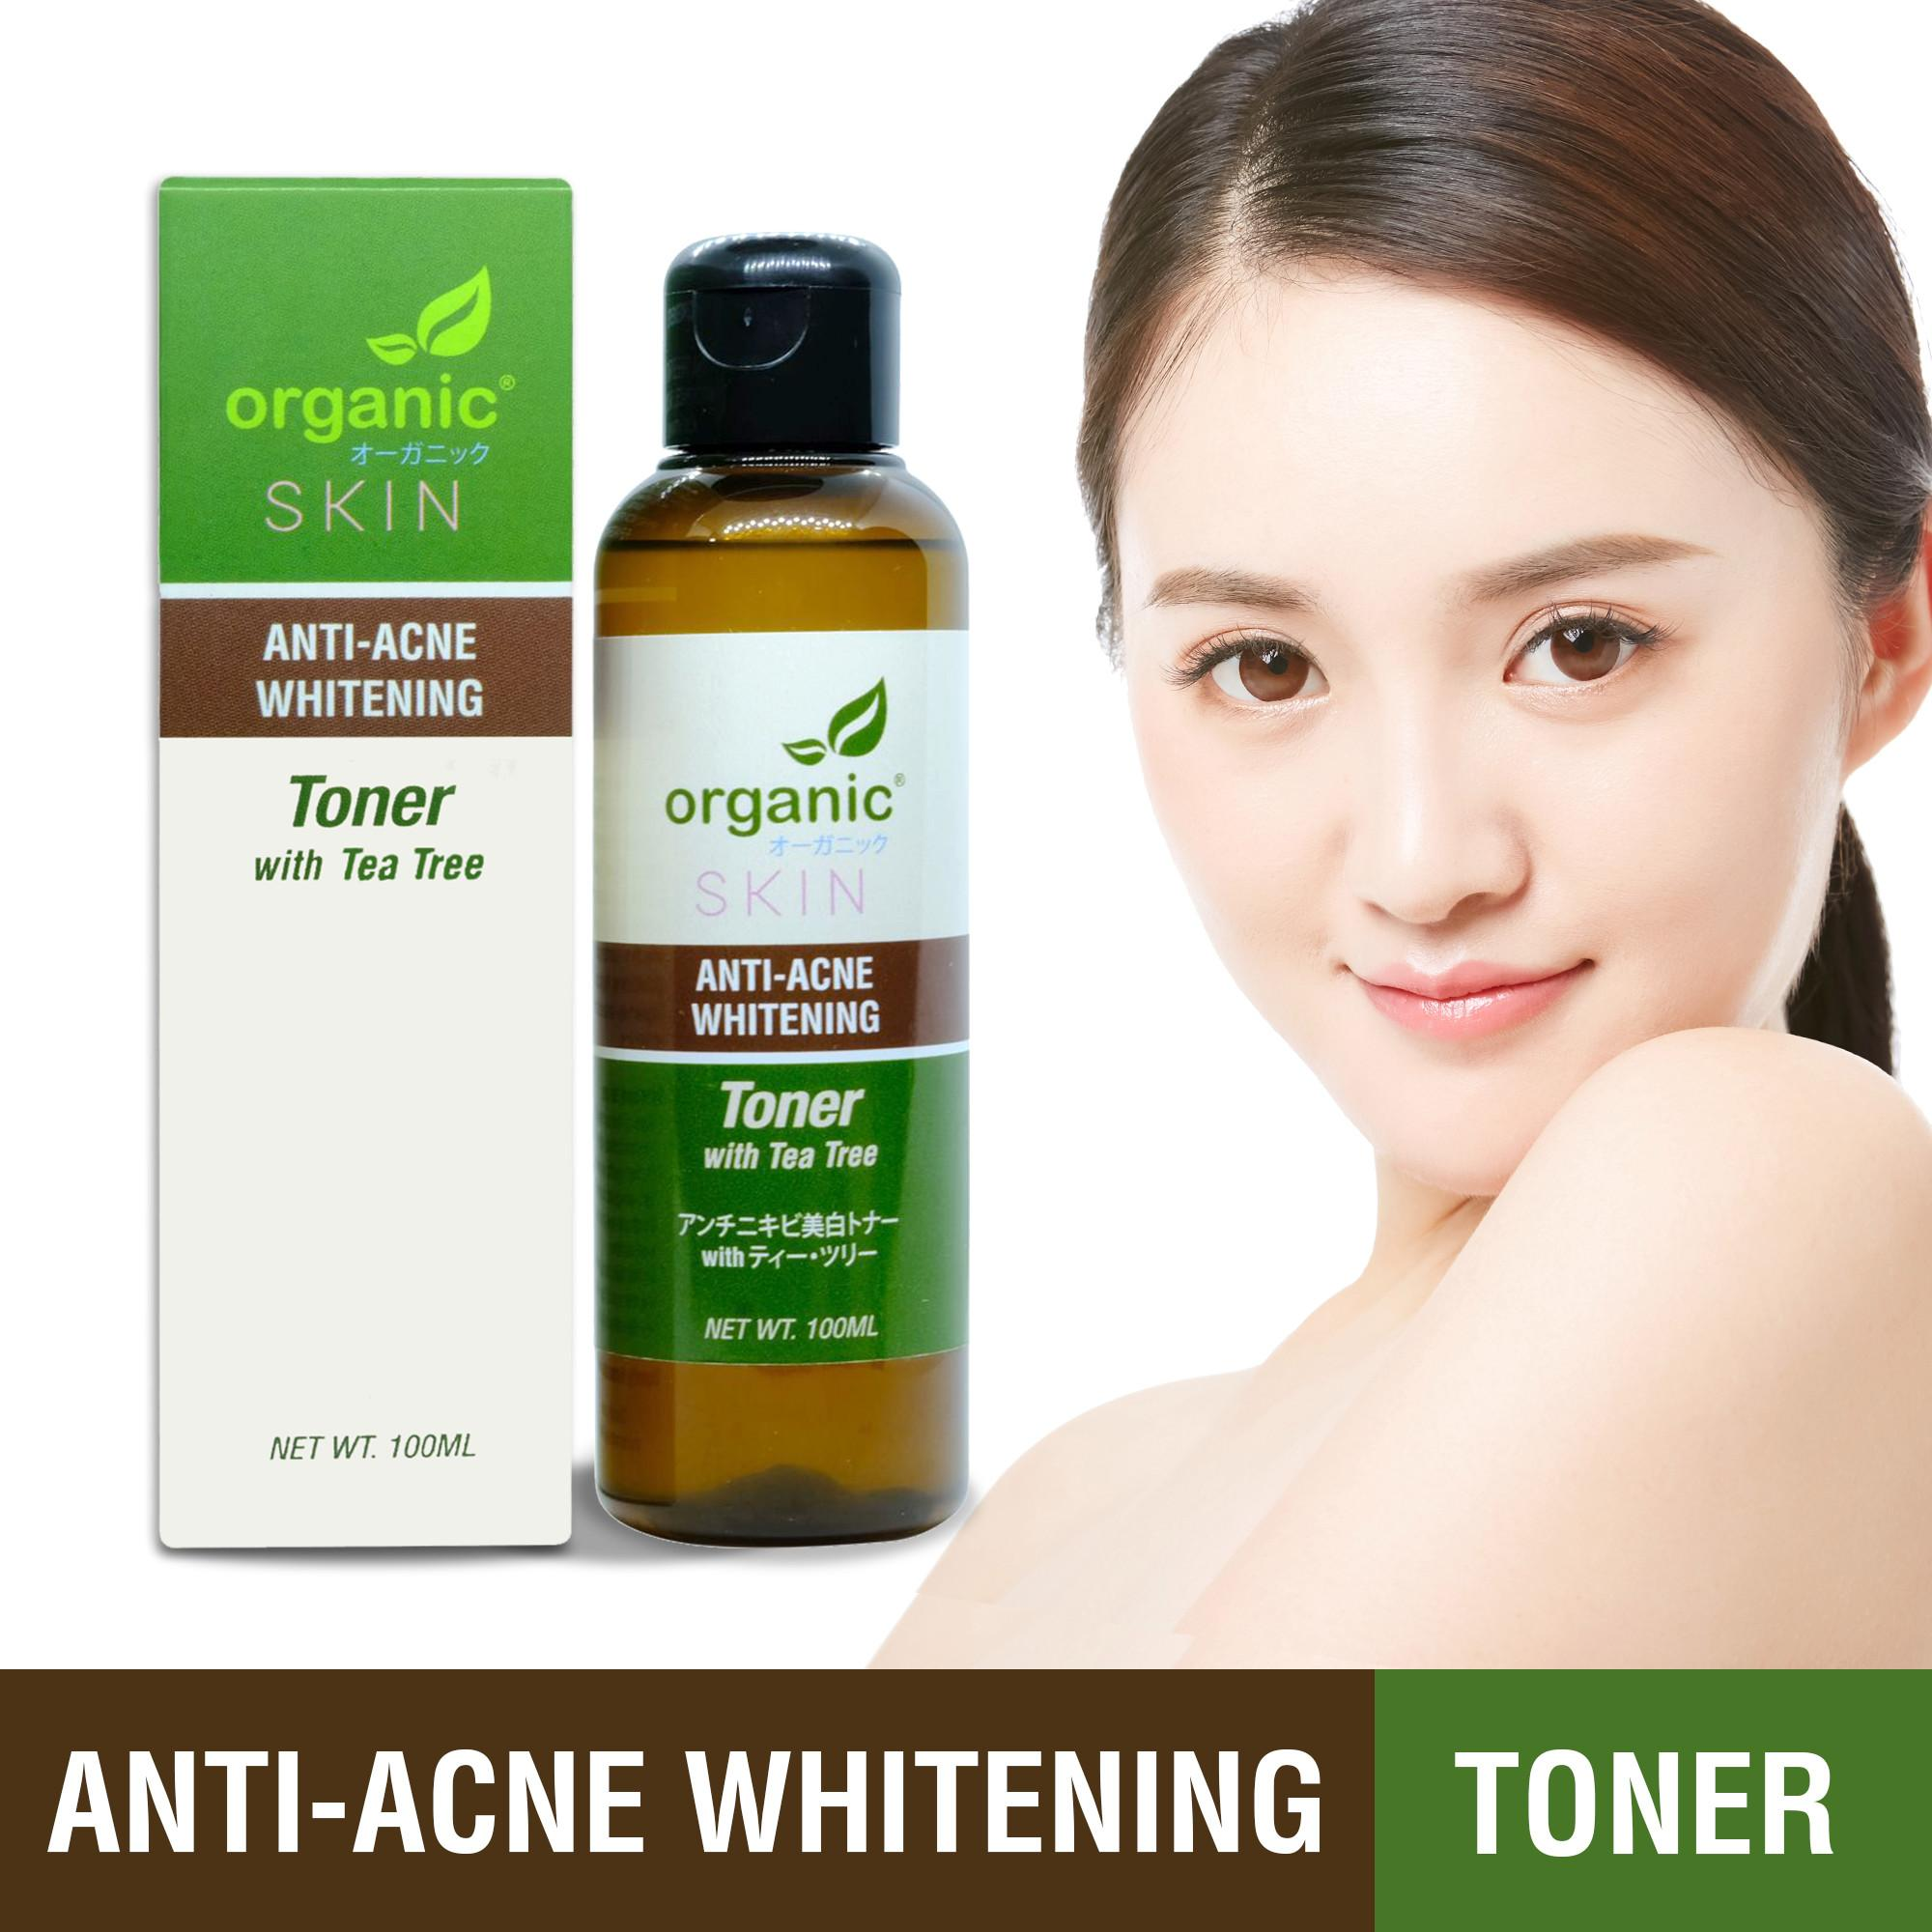 Organic Skin Japan Anti-Acne Whitening Toner With Tea Tree (100 Ml) Antiacne Anti Acne Antipimple Anti-Pimple Korean Japan Skincare Skin Care Gluta Glutathione Kojic Acid Kojicacid Witchhazel Gigawhite Organicskin By Organic Skin Japan.